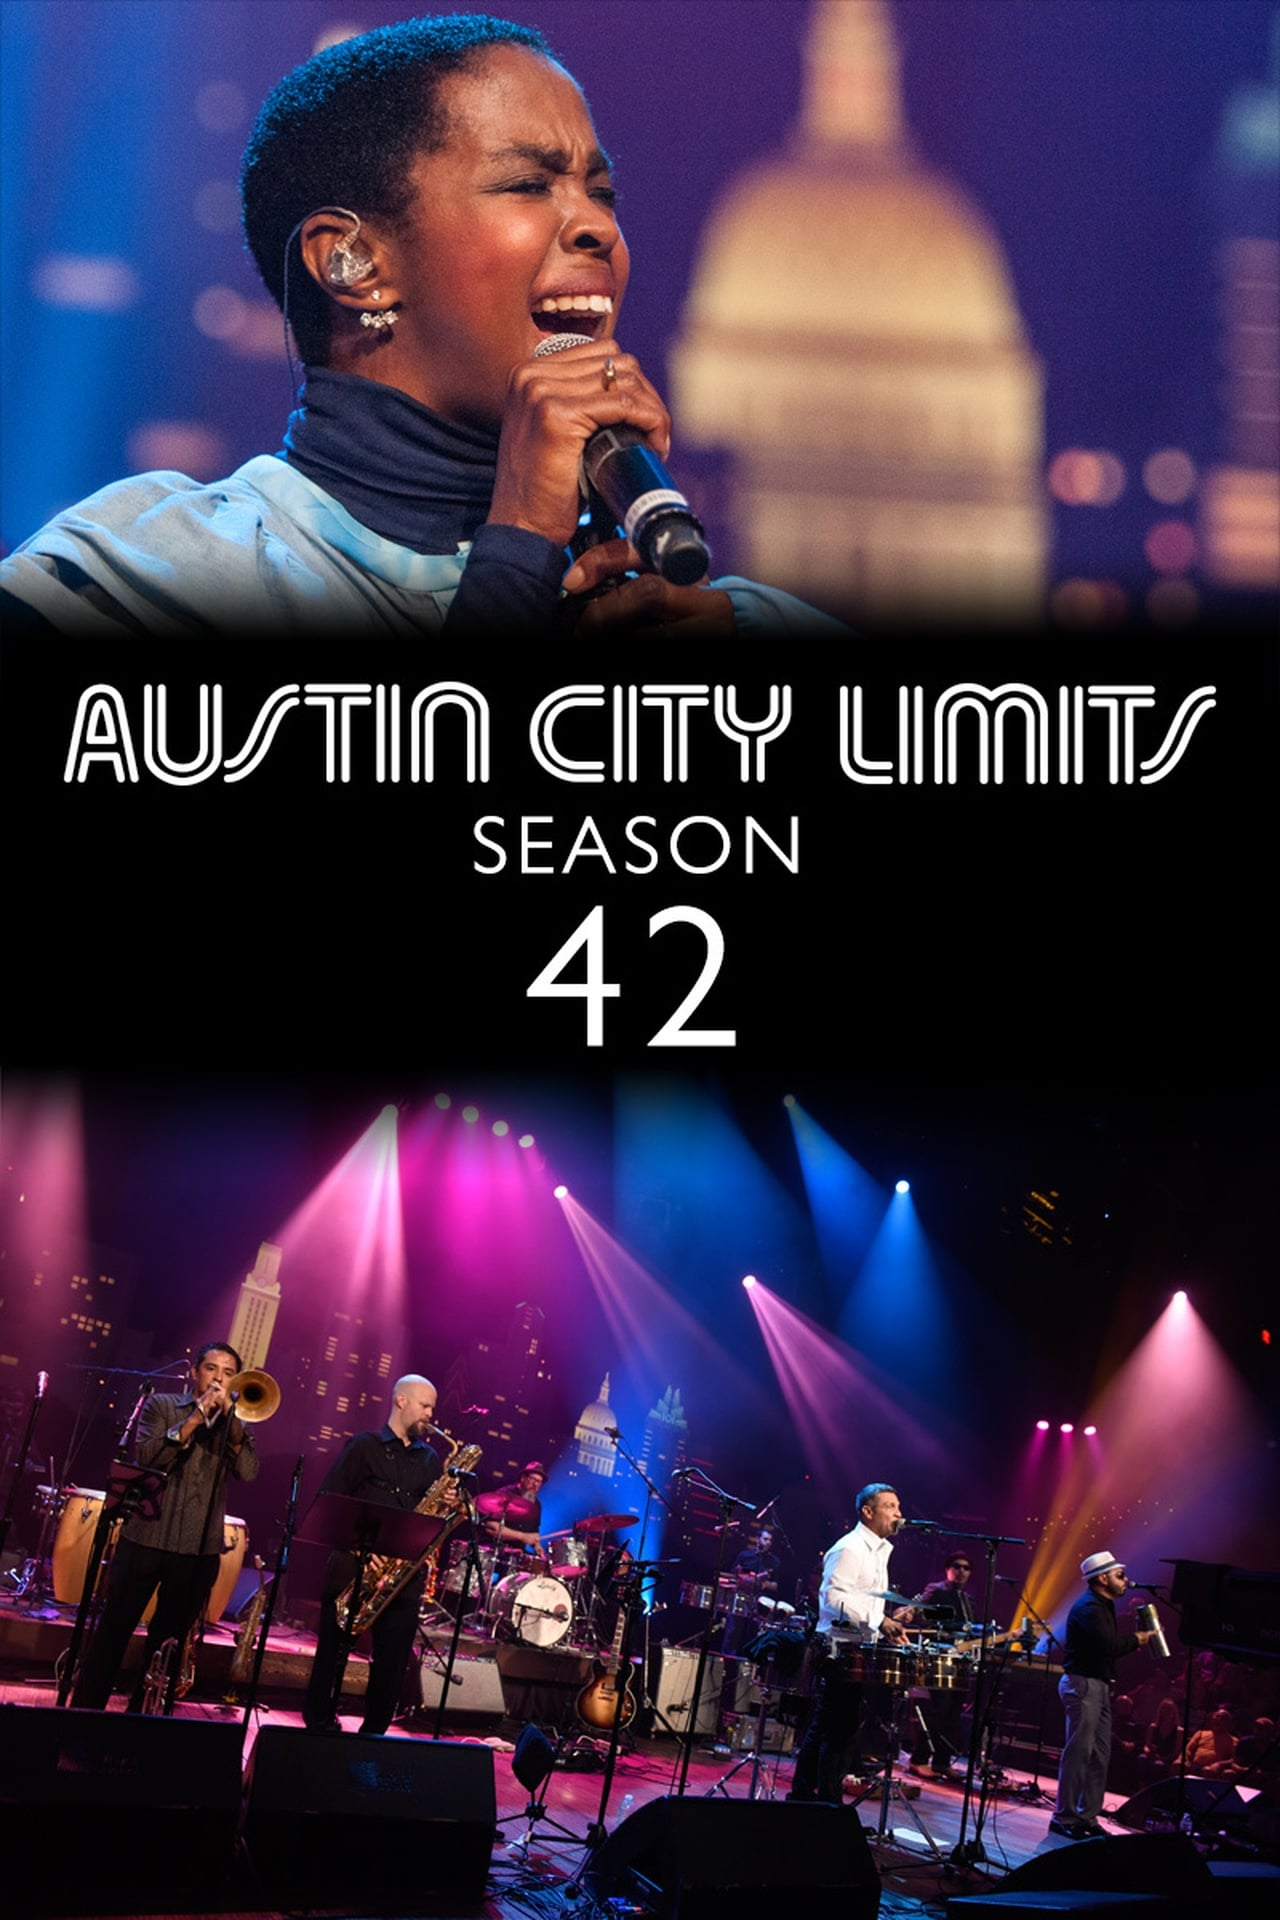 Watch Austin City Limits Season 42 Online